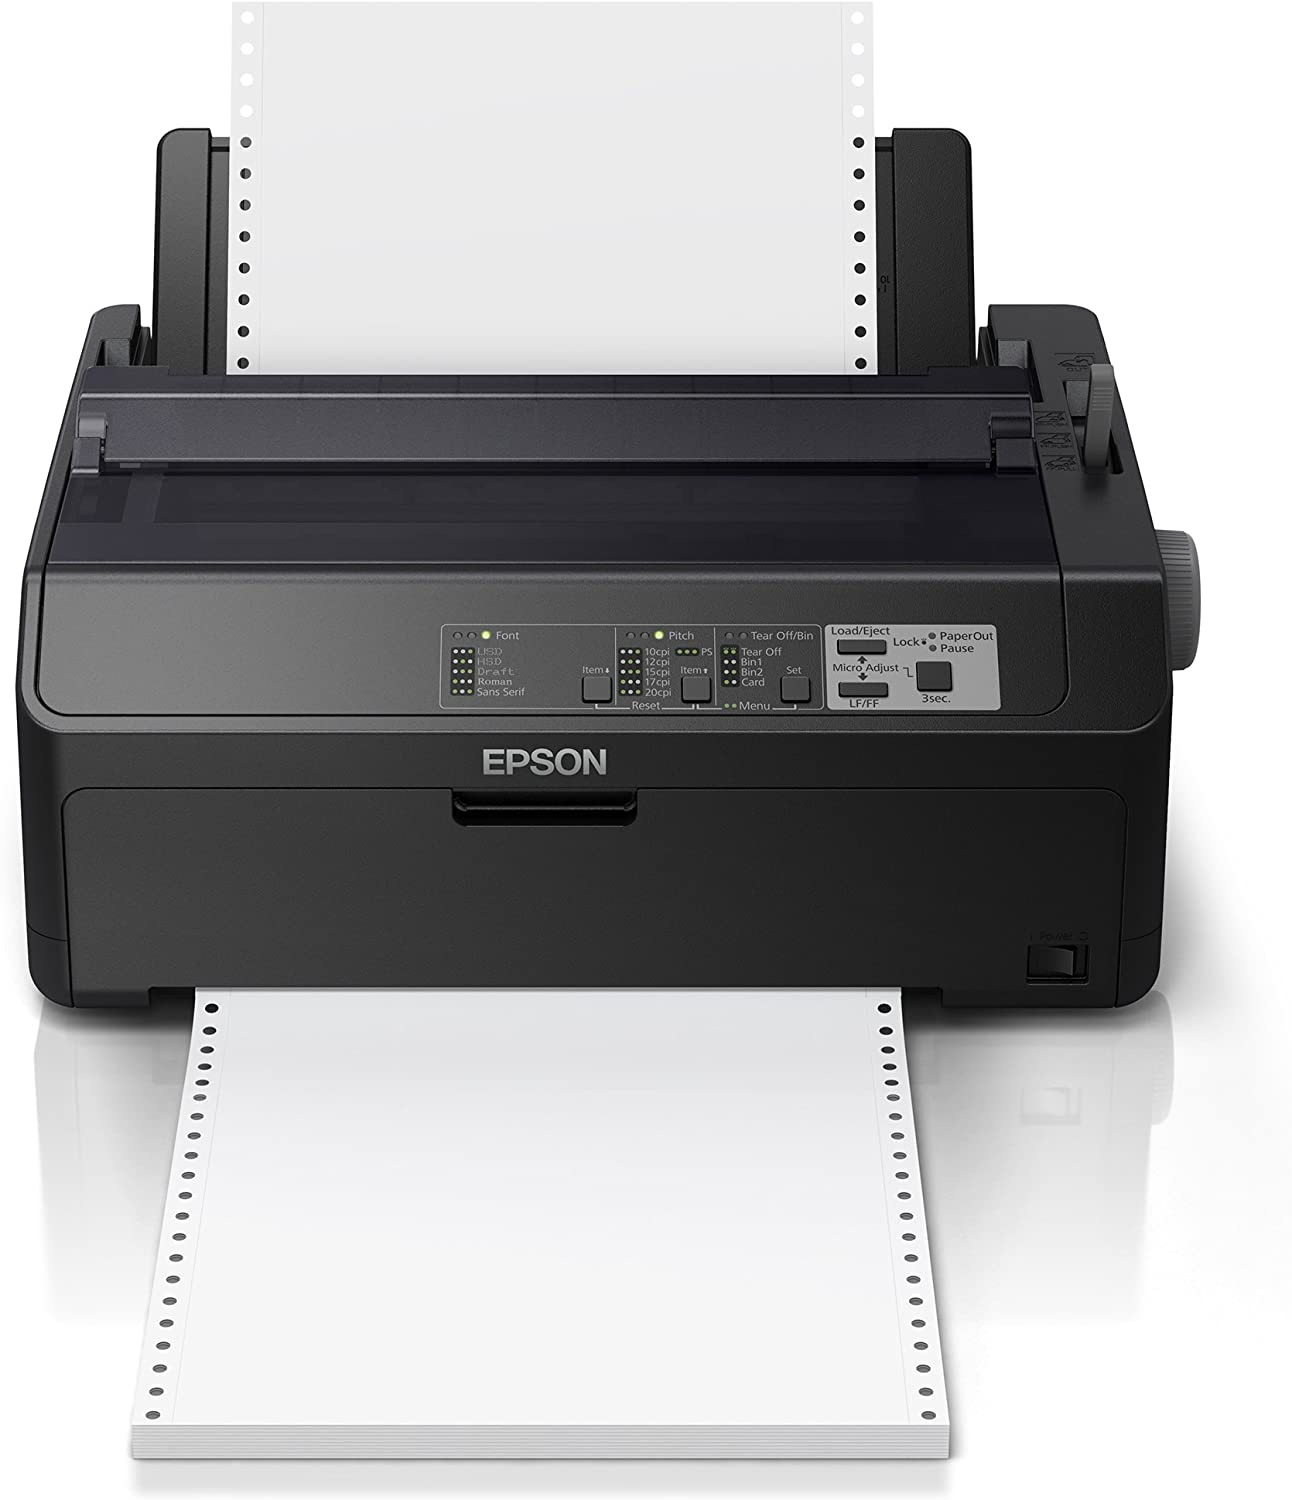 Amazon.com: Epson FX 890ii: Electronics